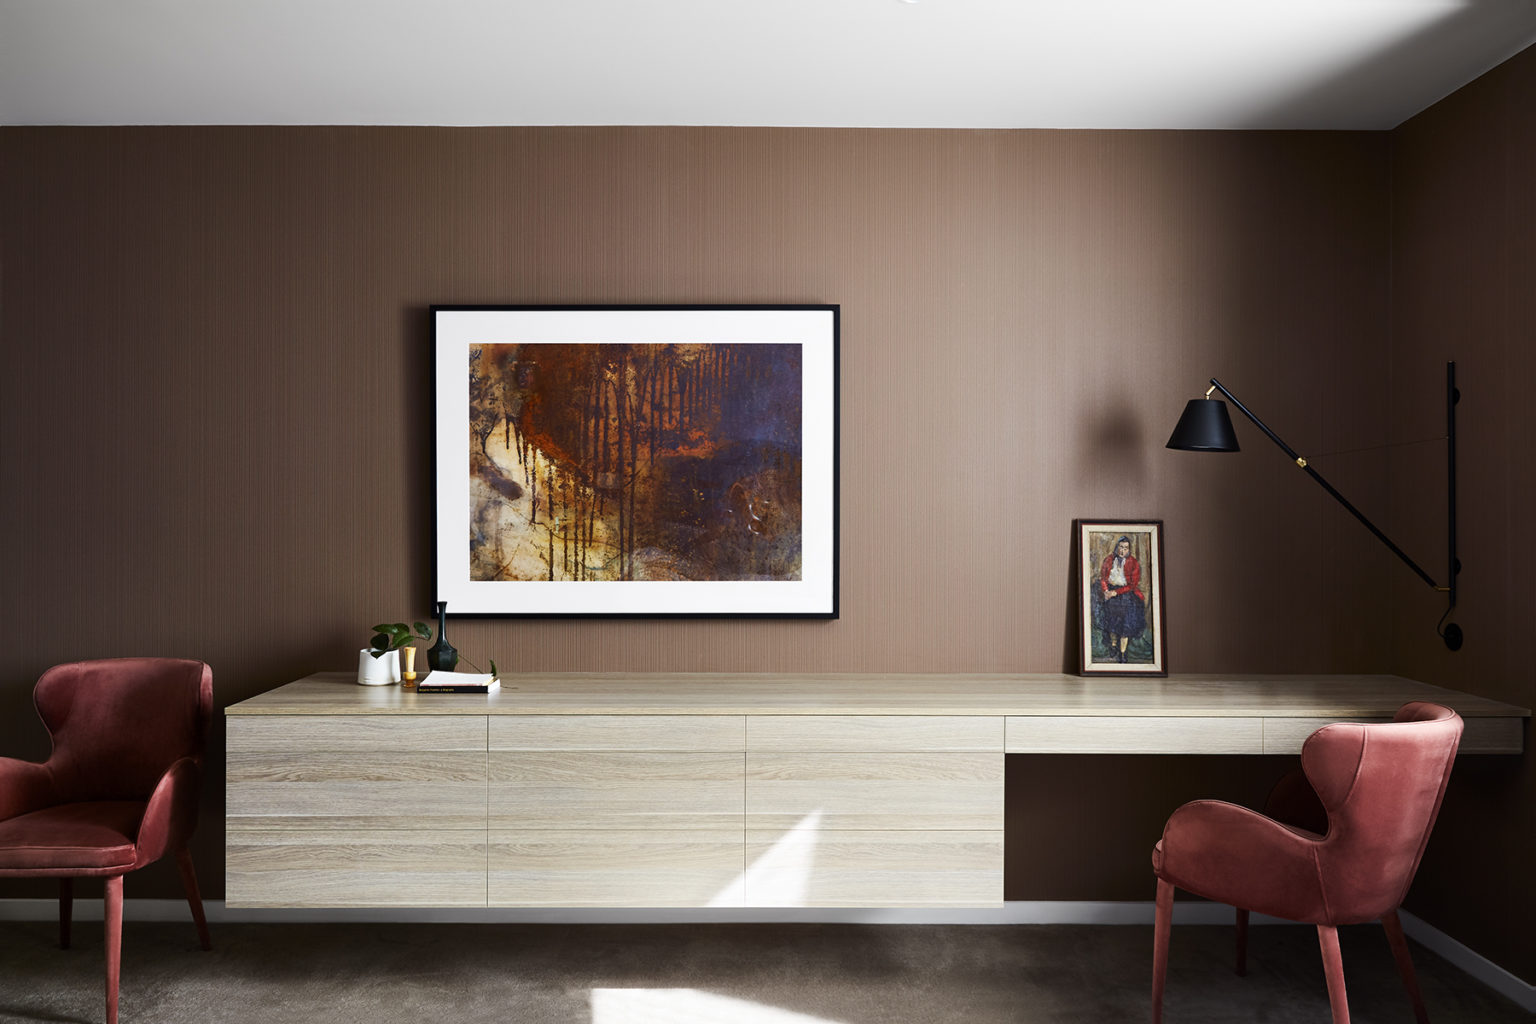 sitting room with long light timber storage unit with red chairs and art on wall